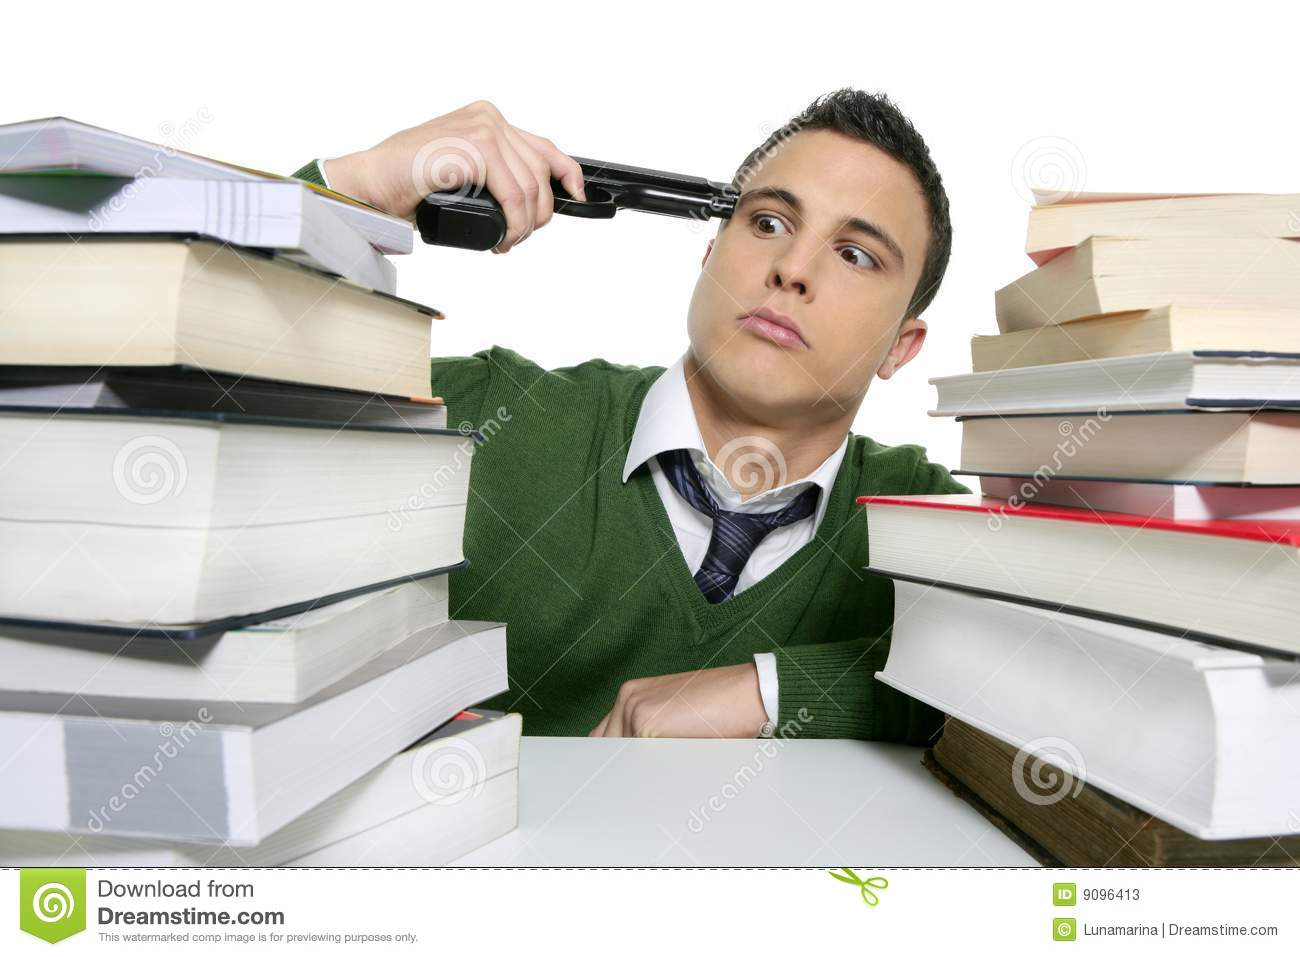 Unhappy Sad Student Suicide Gun Metaphor Stock Photos - Image: 9096413